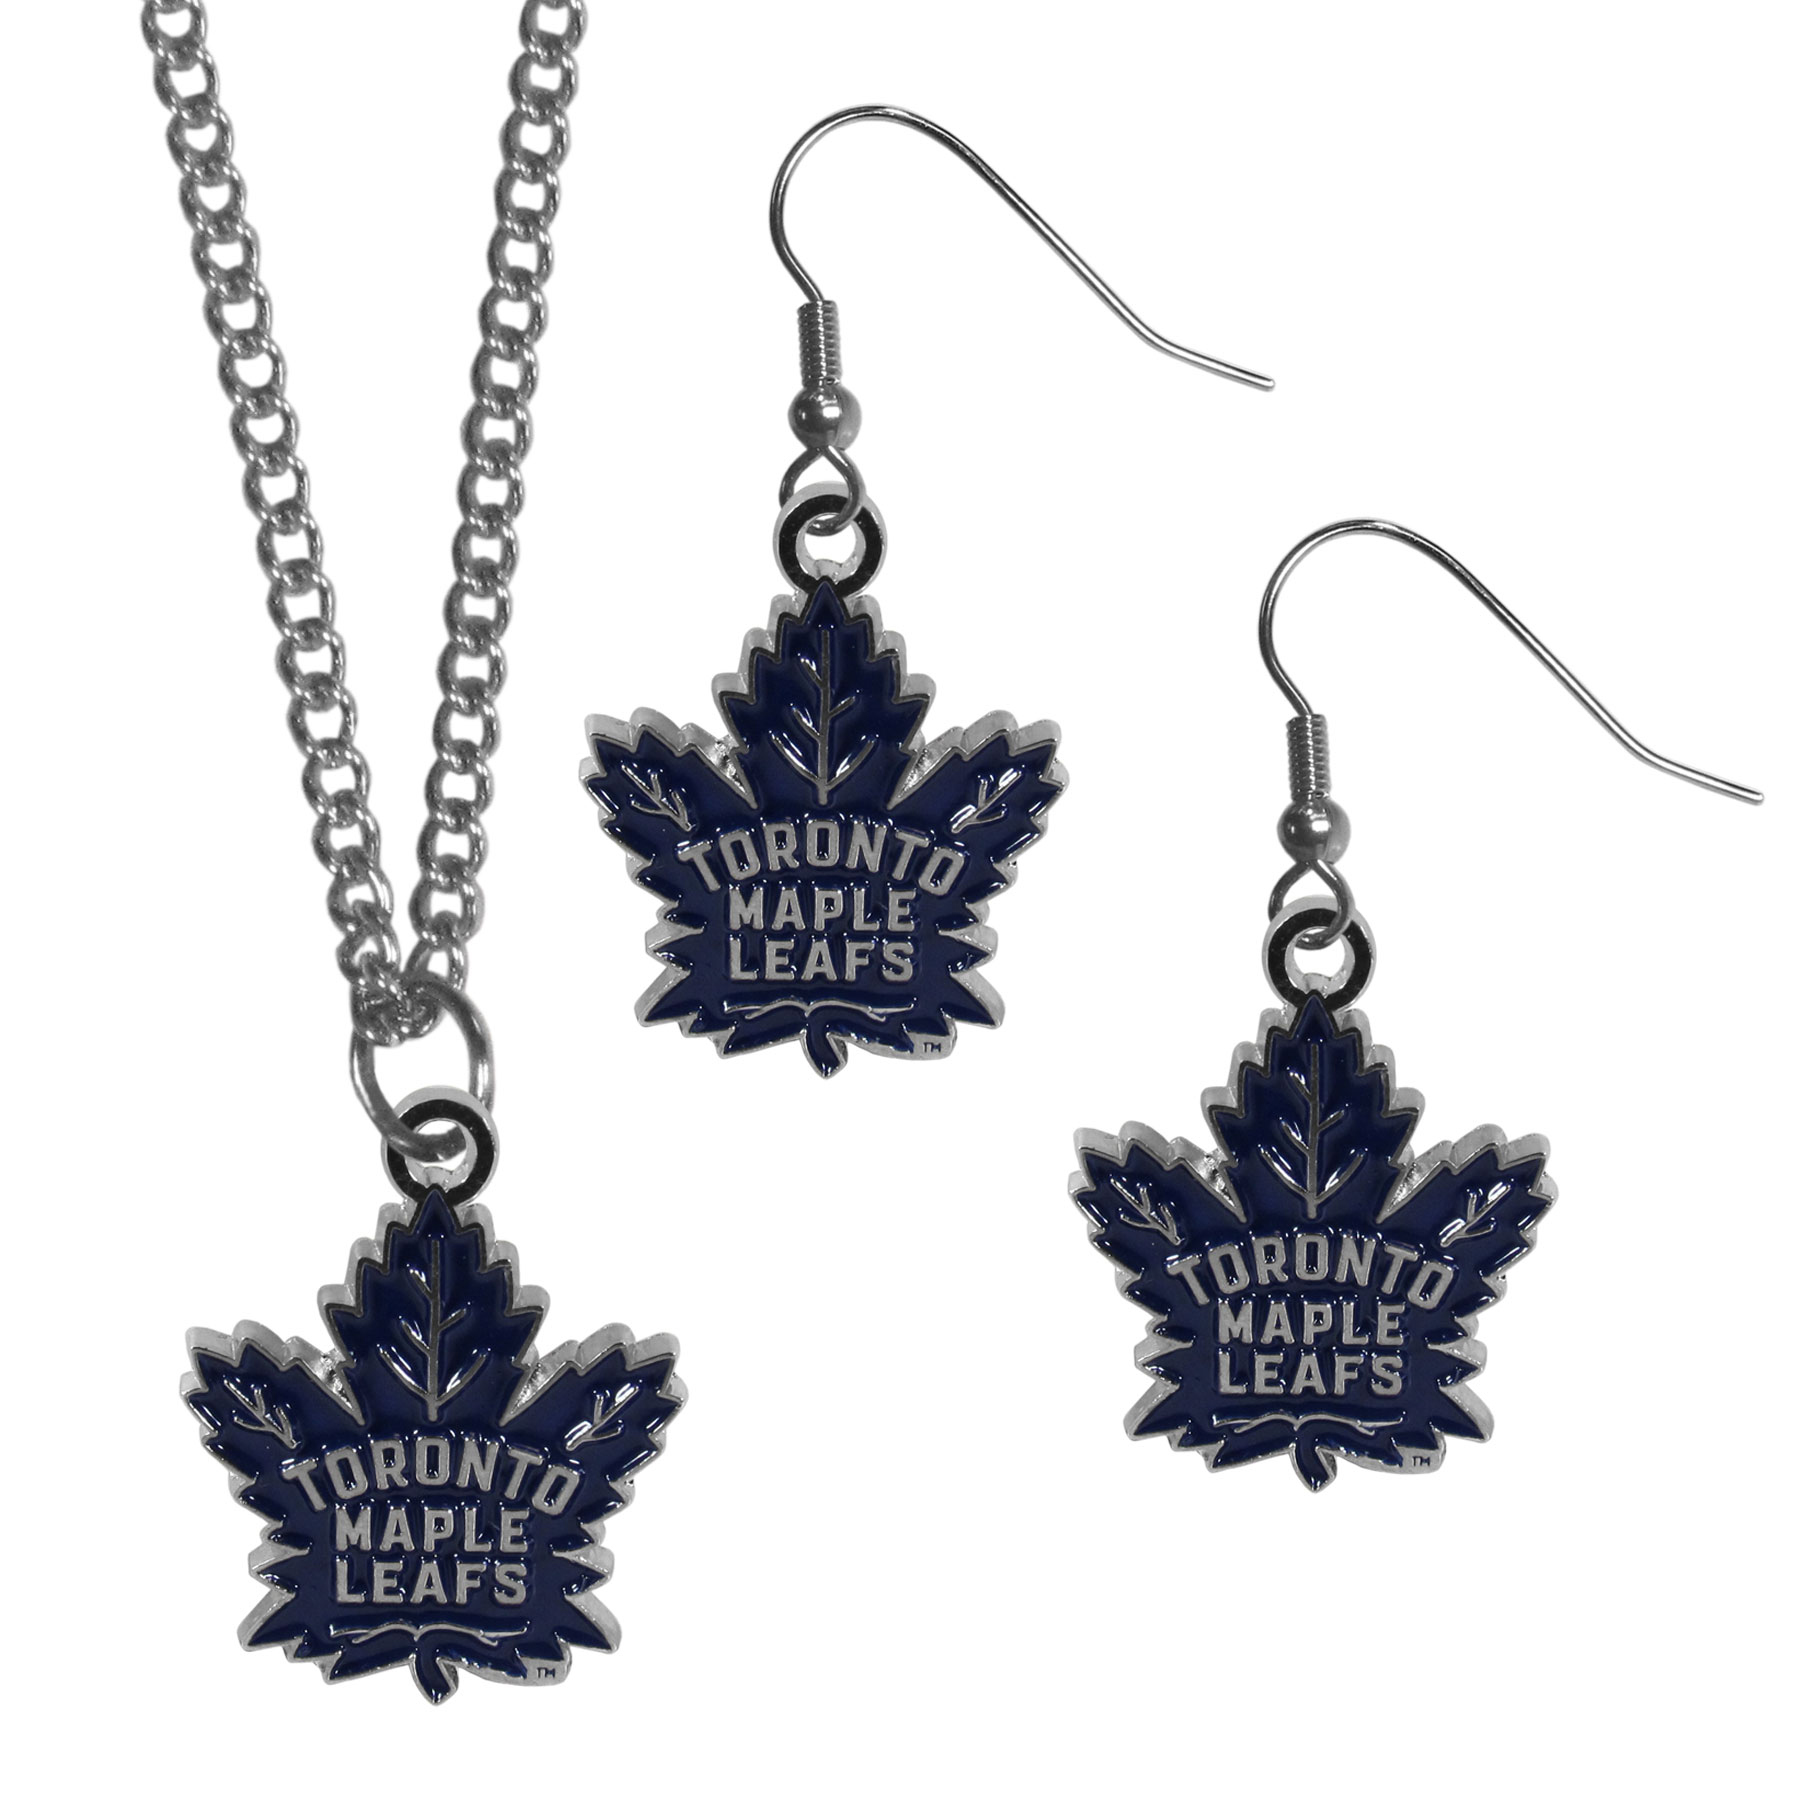 Toronto Maple Leafs® Dangle Earrings and Chain Necklace Set - This classic jewelry set contains are most popular Toronto Maple Leafs® dangle earrings and 22 inch chain necklace. The trendy, dangle earrings are lightweight and feature a fully cast metal team charm with enameled team colors. The matching necklace completes this fashion forward combo and is a spirited set that is perfect for game day but nice enough for everyday.